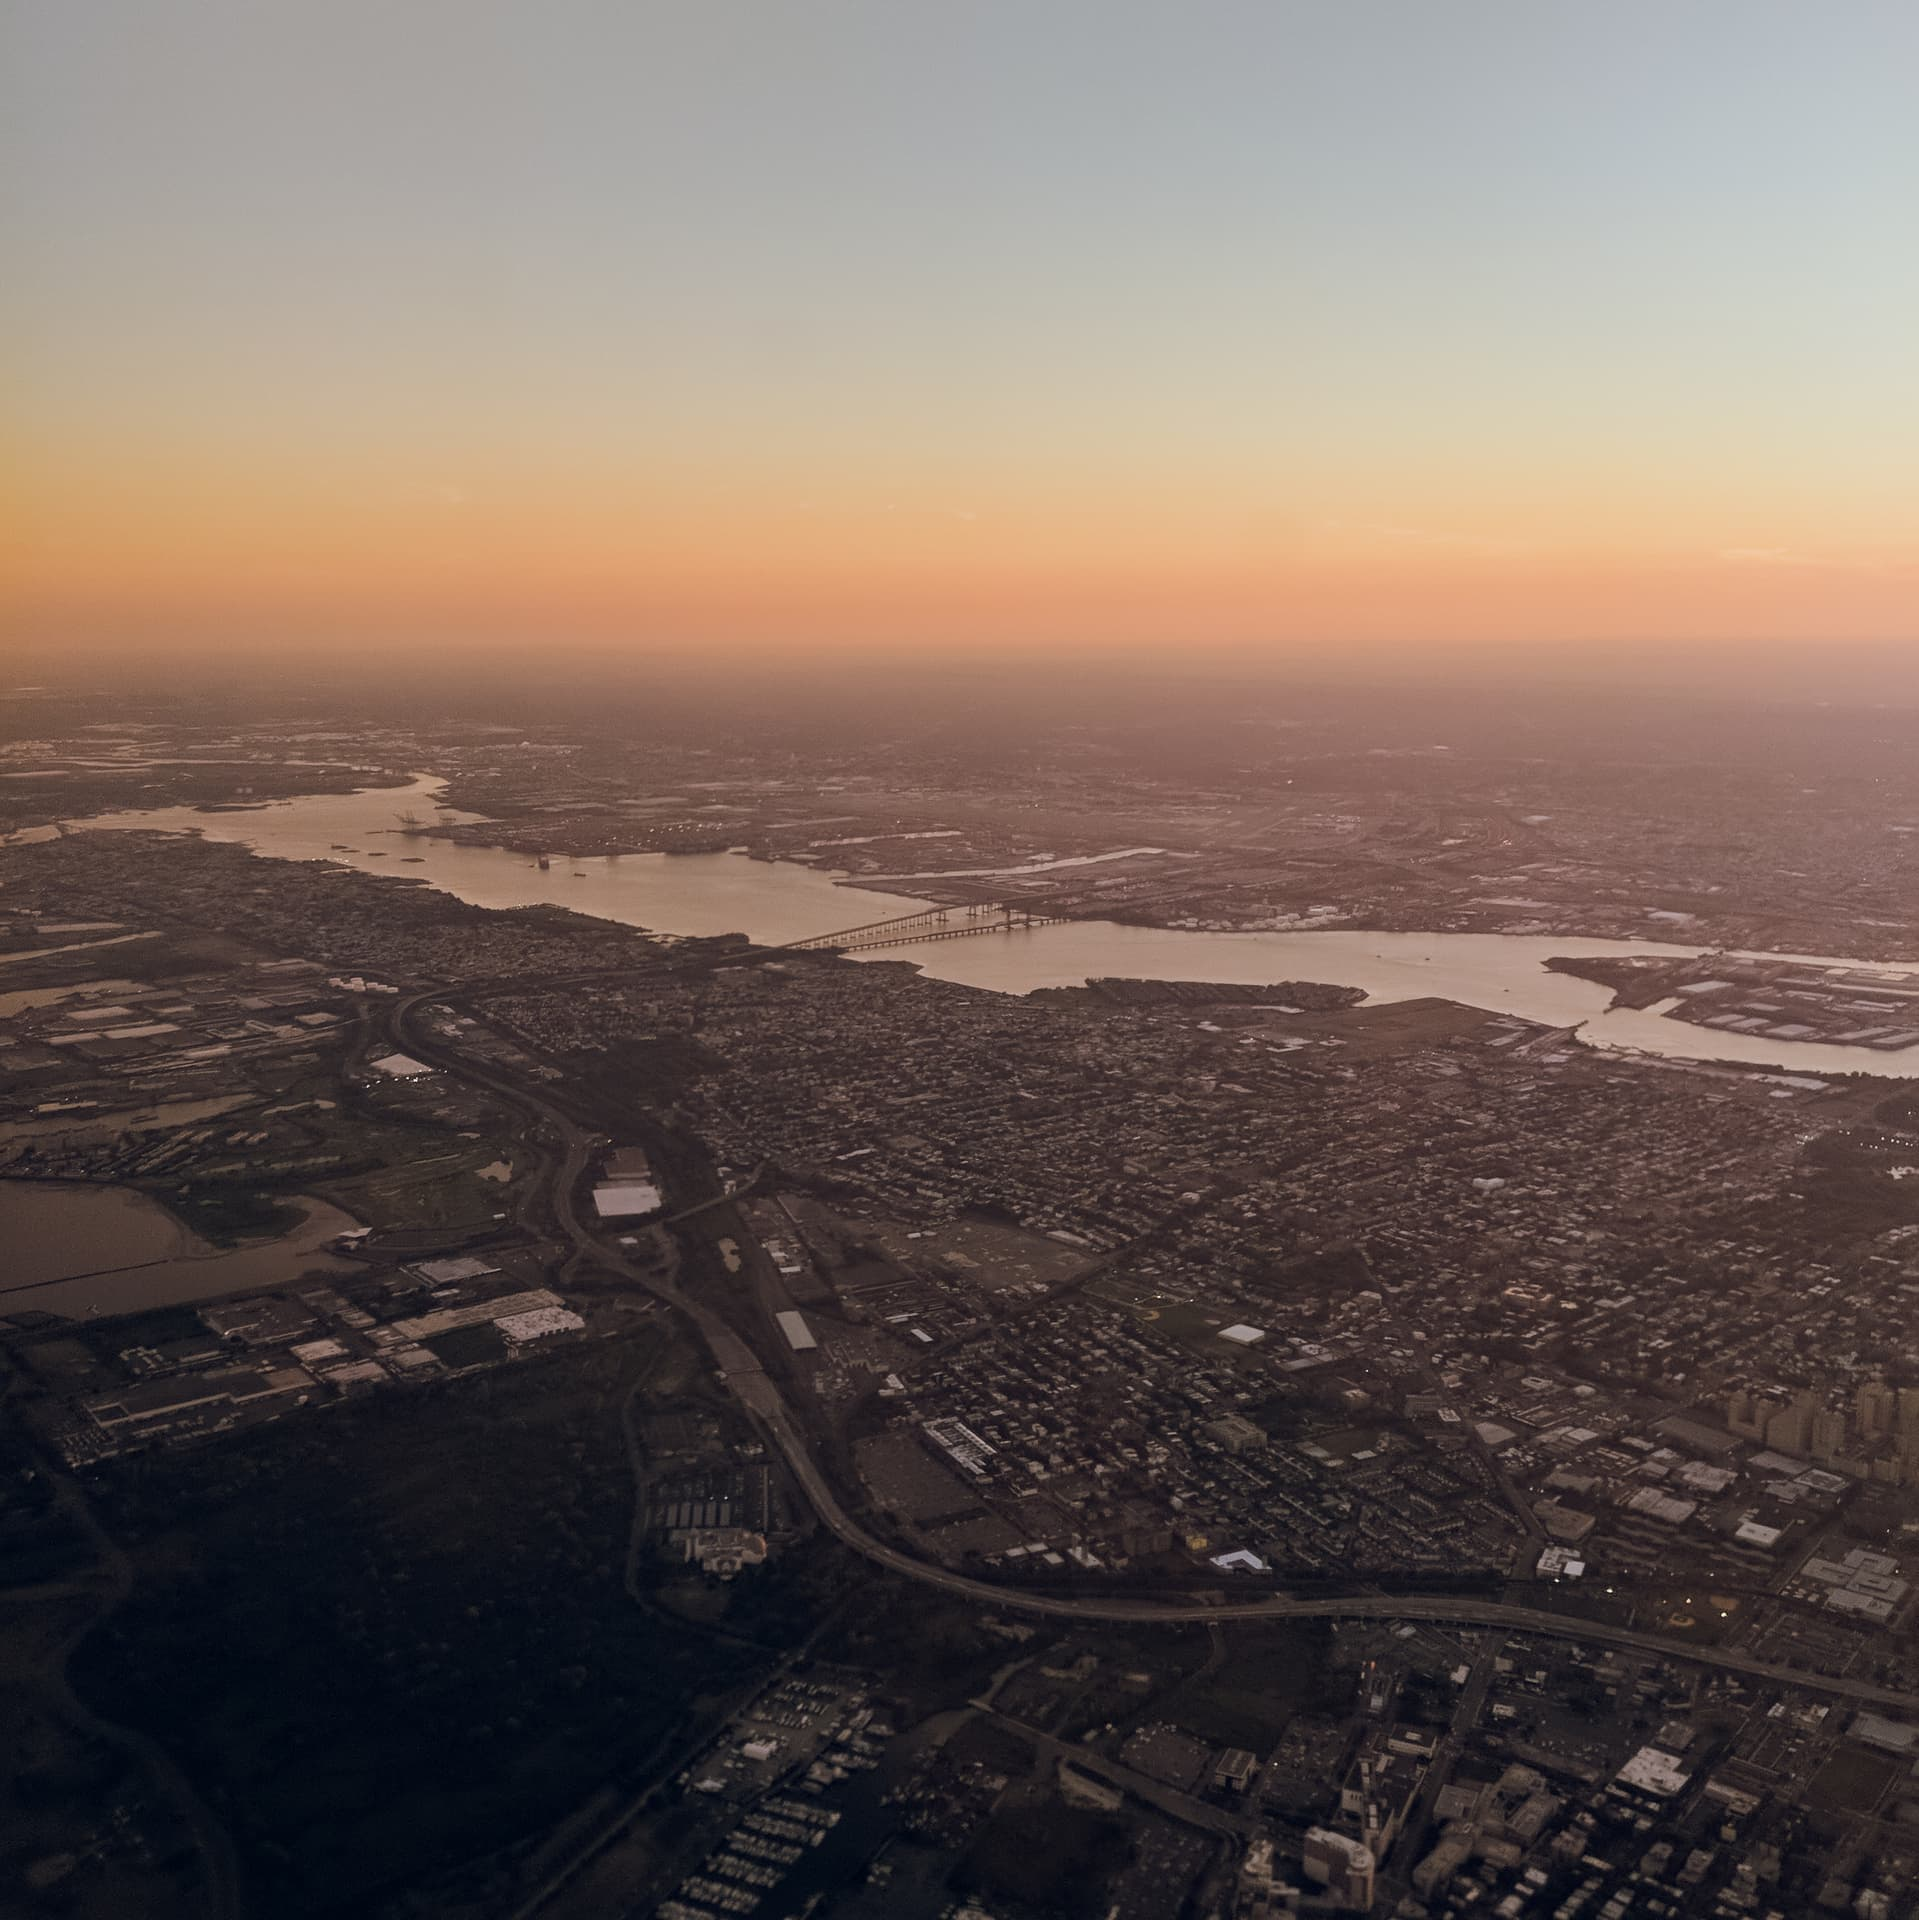 Looking west across Jersey City at dusk from the air. The image has a distinct Blade Runner-esque feeling to it.